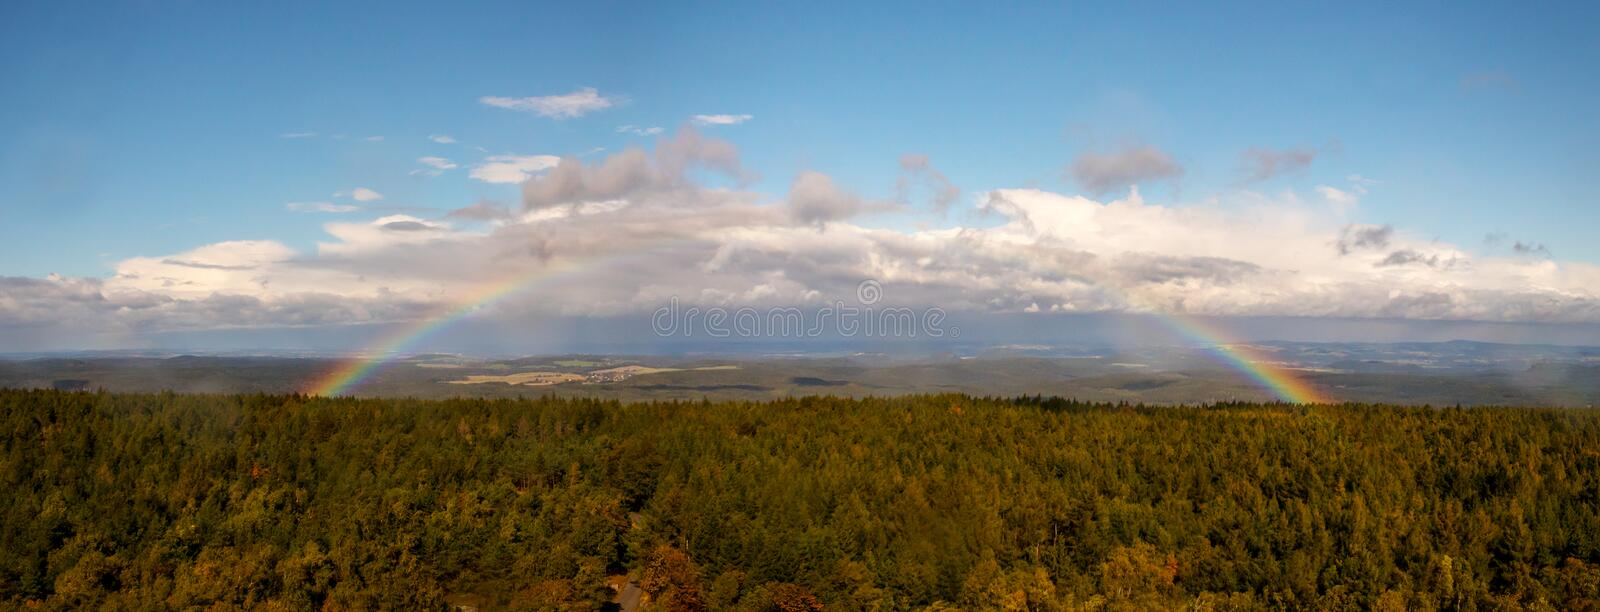 Rainbow over the forest - autumn landscape with rainbow, blue sky and white clouds royalty free stock image